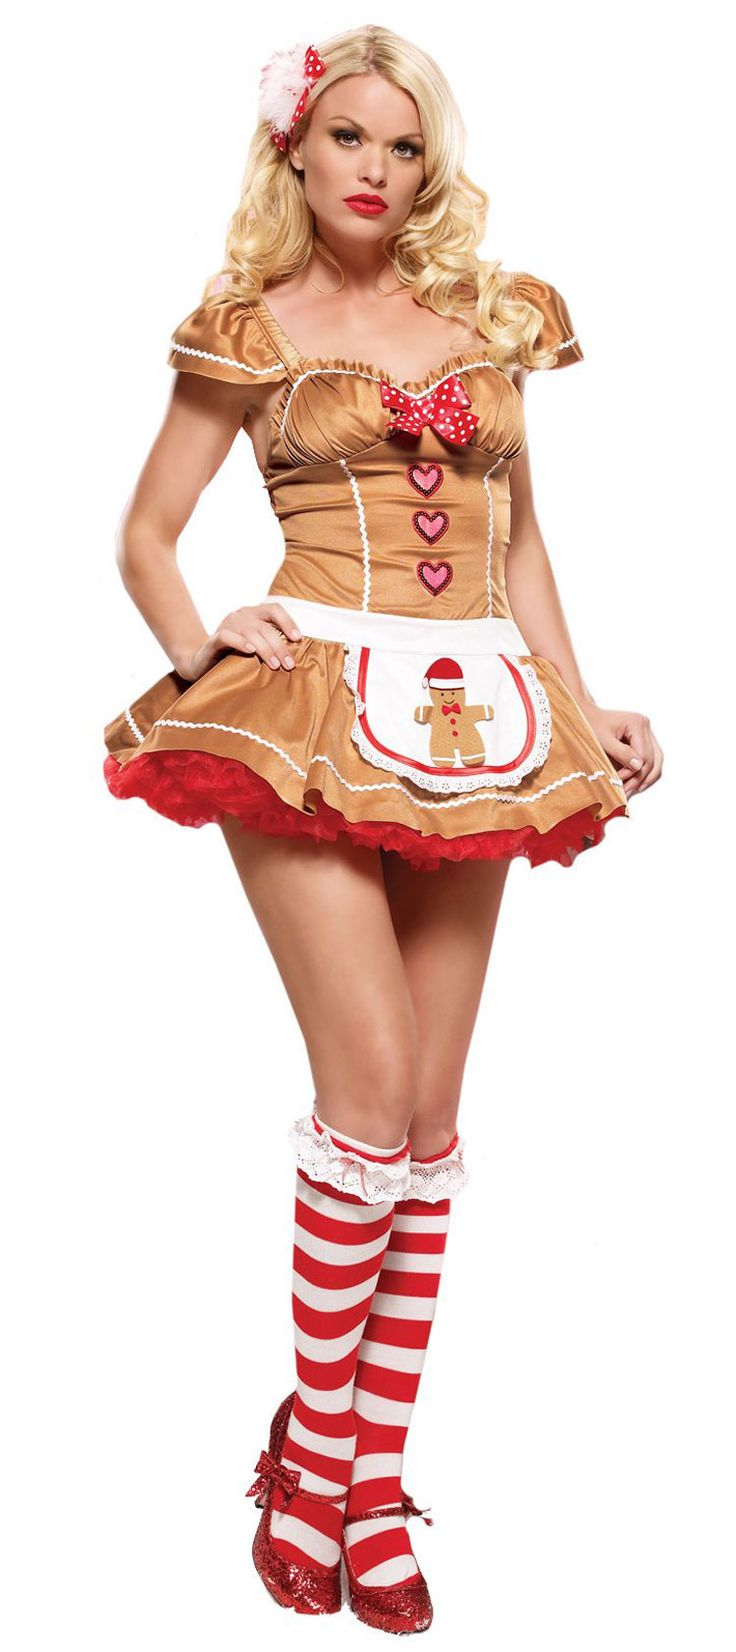 Christmas dress teen - Sexy 0costumes For Teen Girls Sexy Gingerbread Girl Christmas Costume